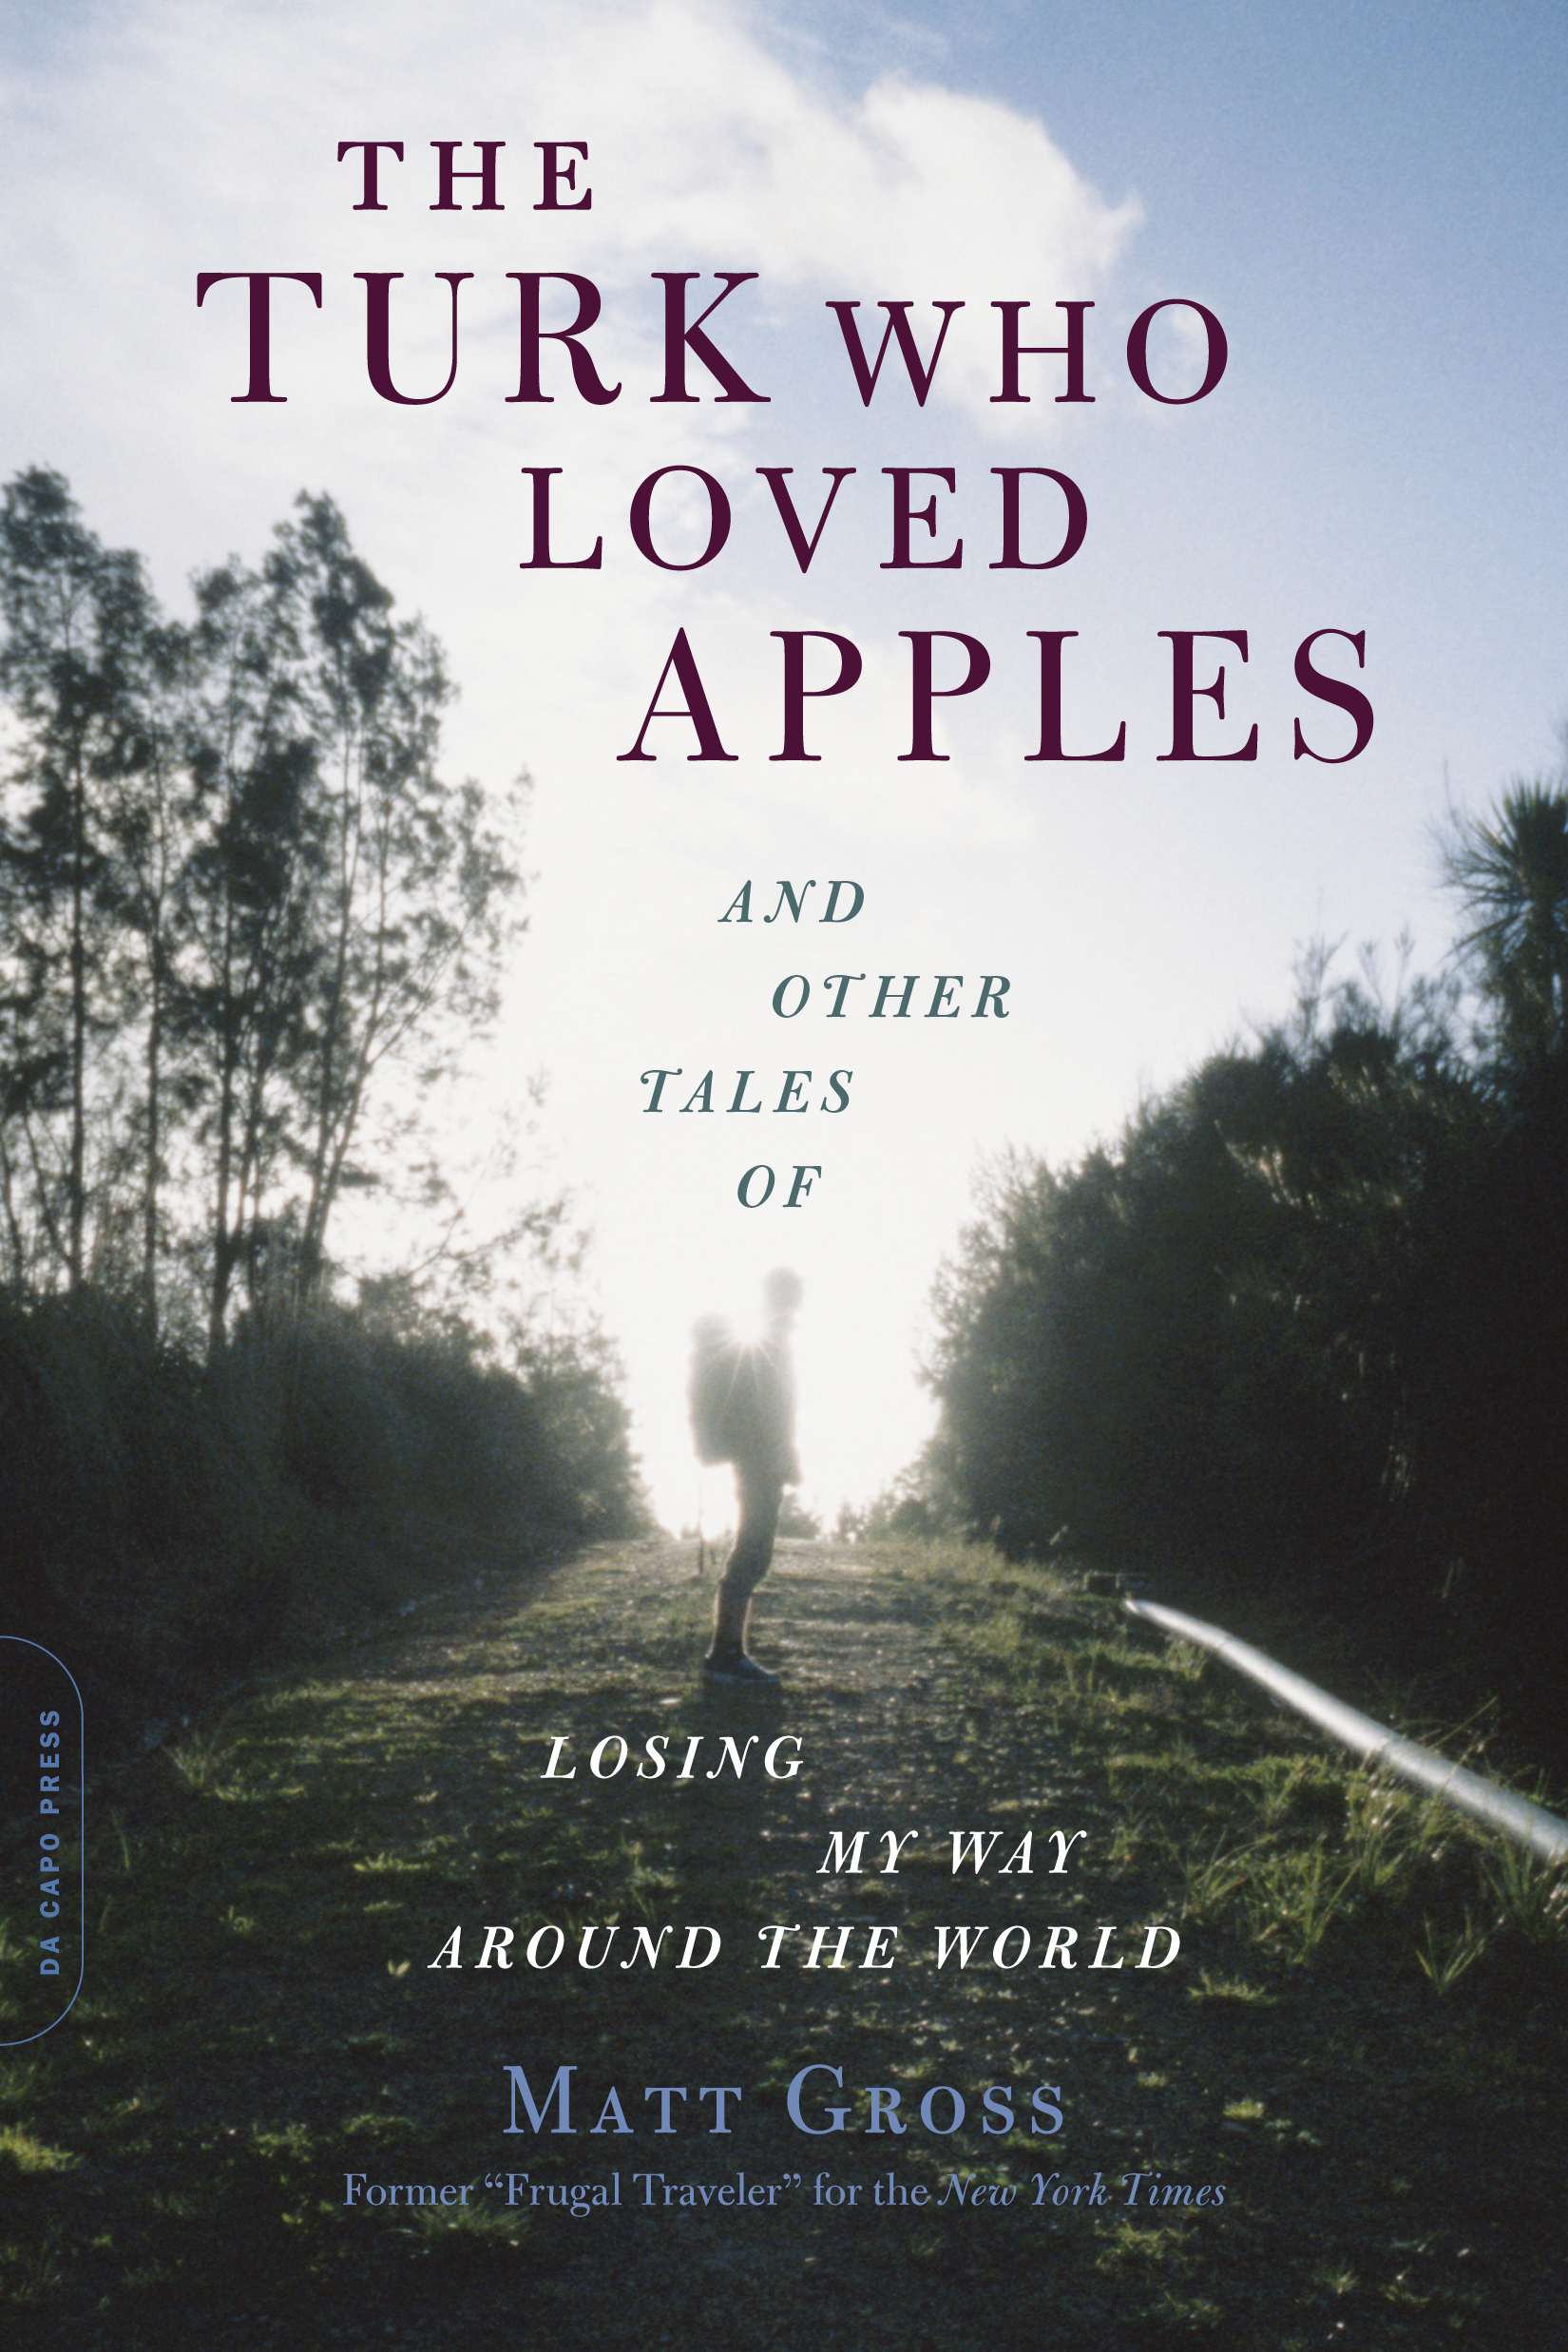 The Turk Who Loved Apples - Matt Gross